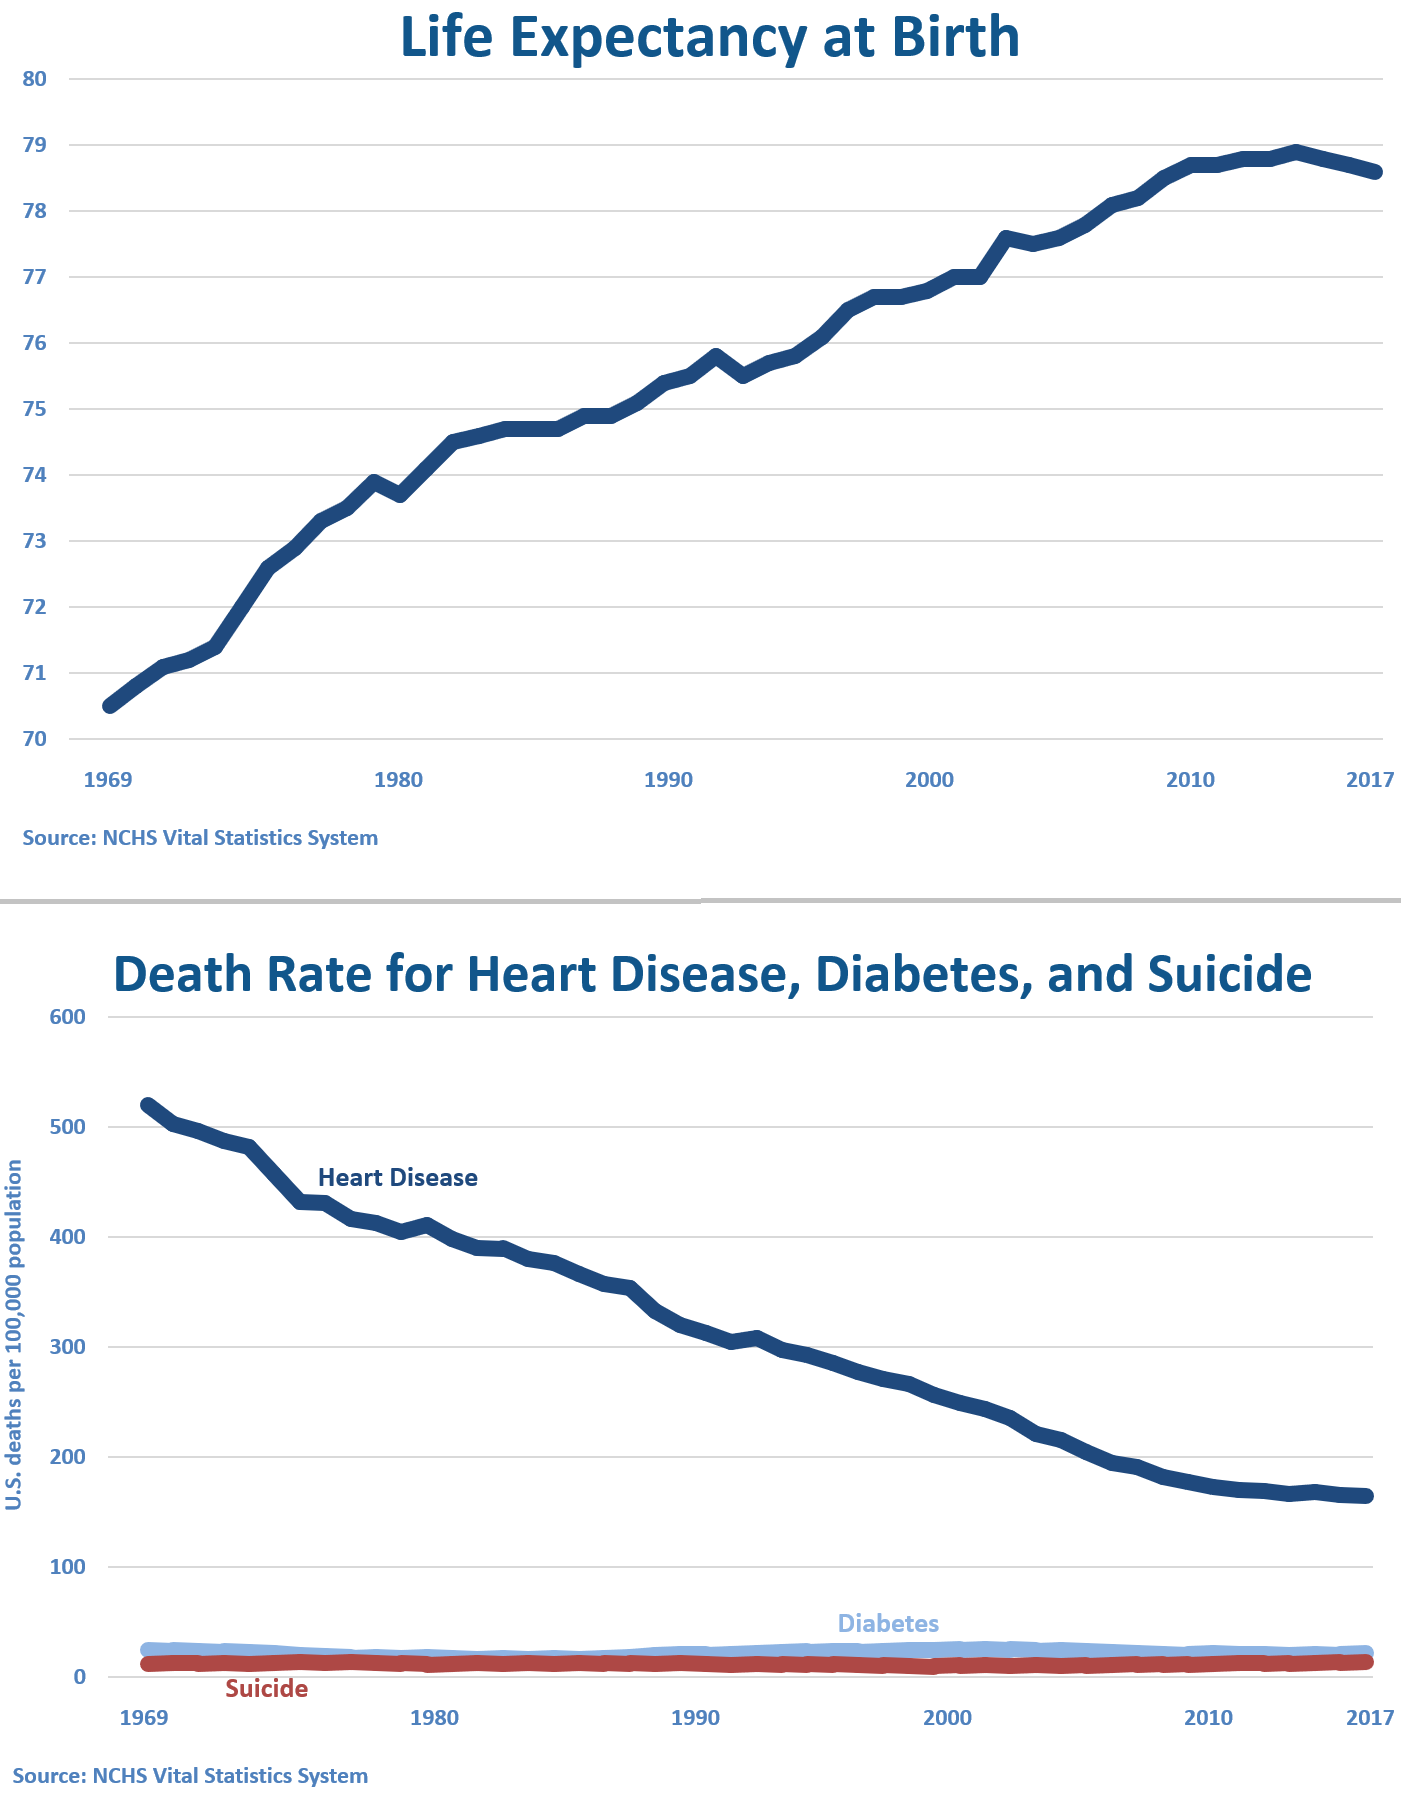 Life Expectancy and Death Rates